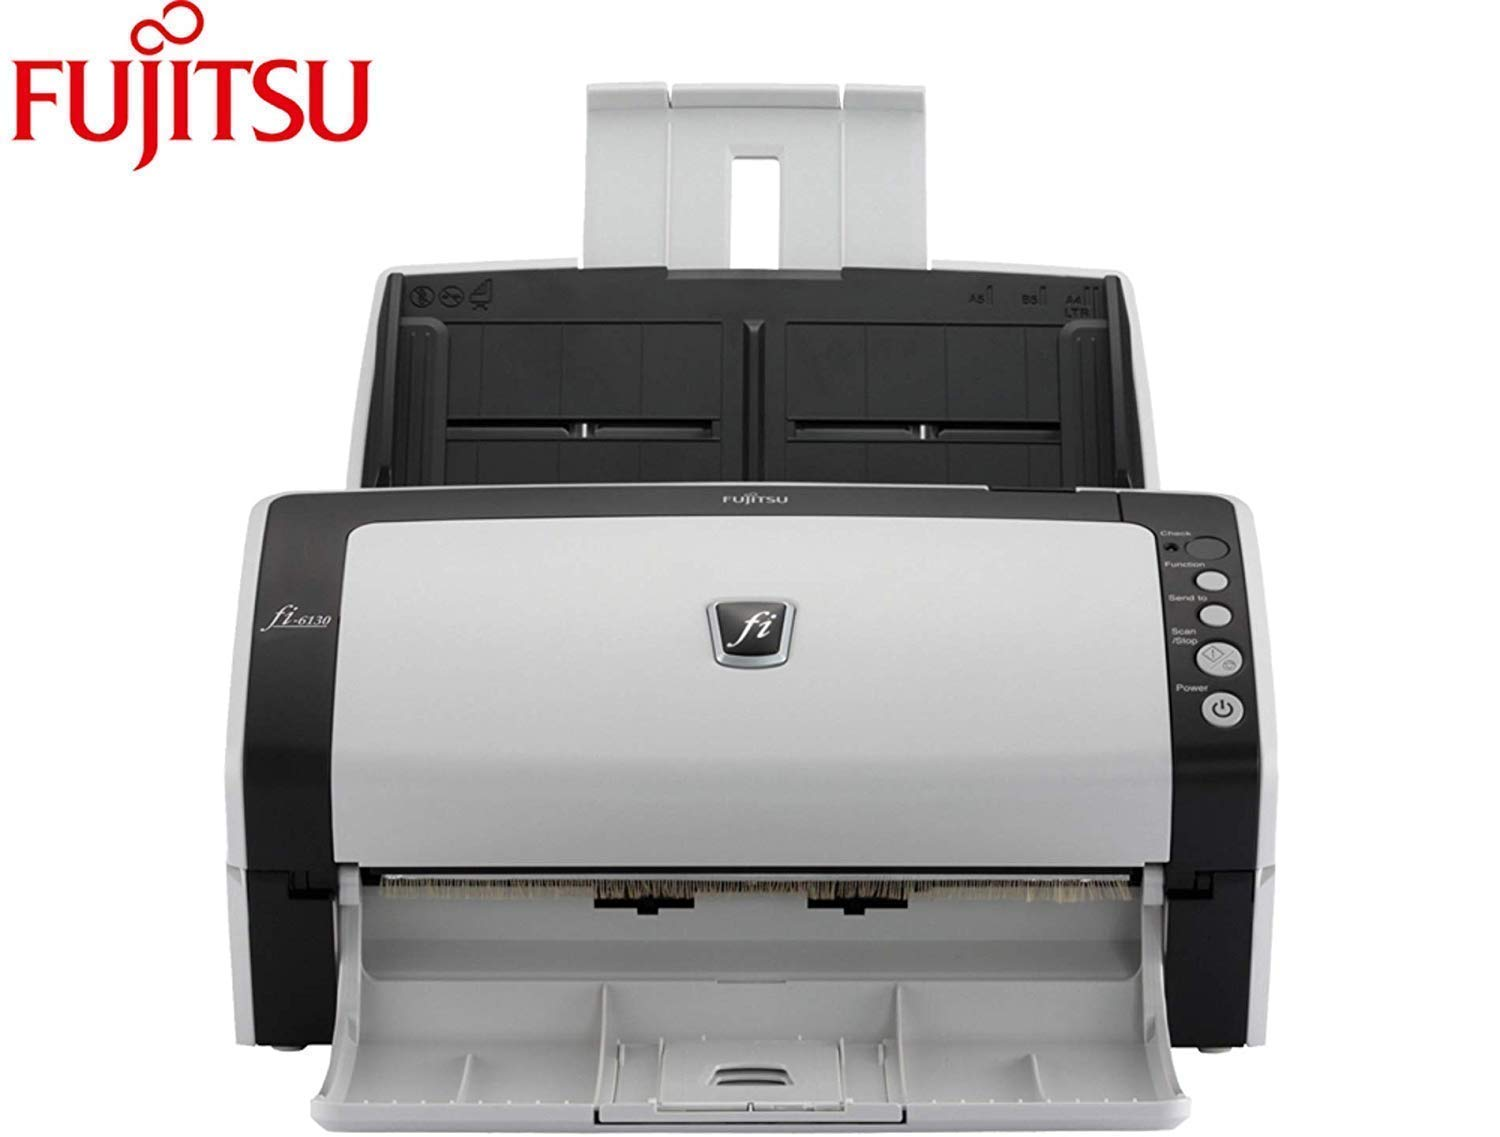 Fujitsu fi-6130Z Duplex Sheet-Fed Document Scanner Full Warranty (Renewed) by Fujitsu